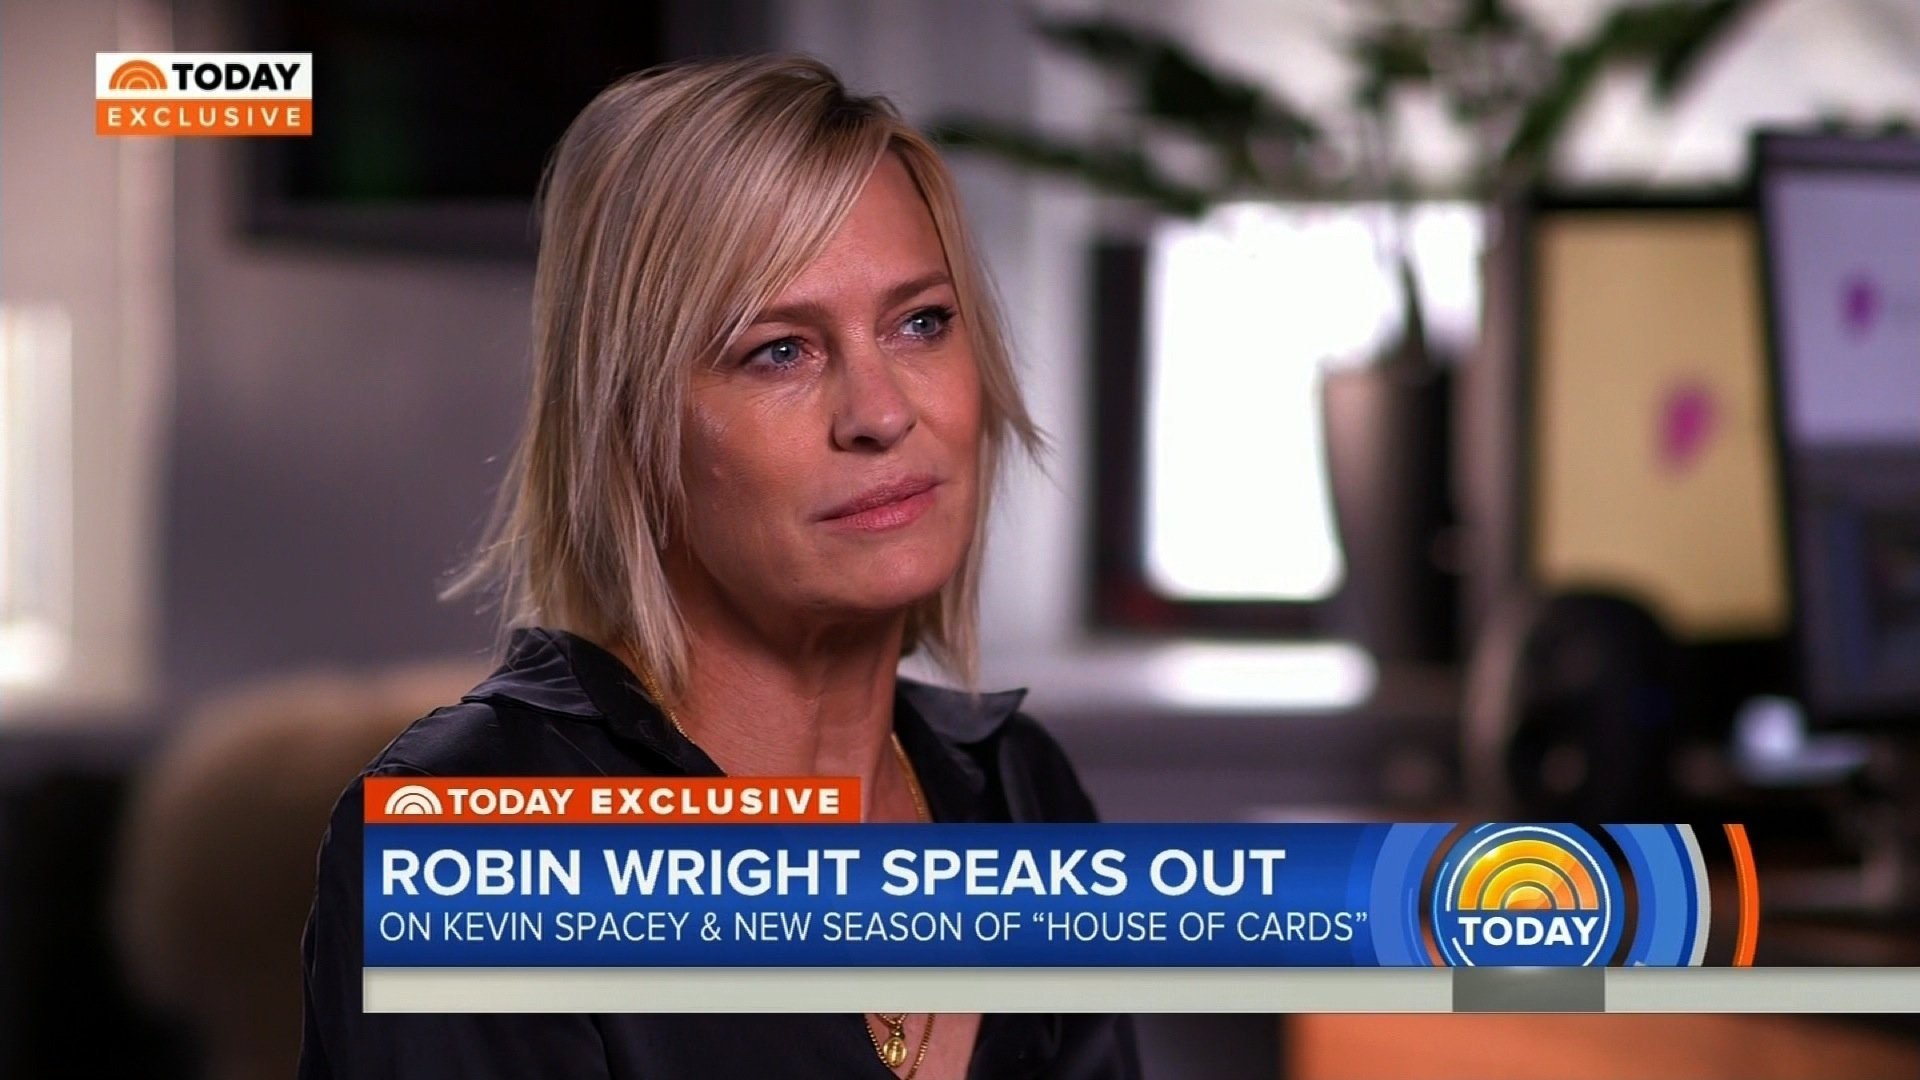 According to Robin Wright, she and Kevin Spacey were more co-workers than friends.